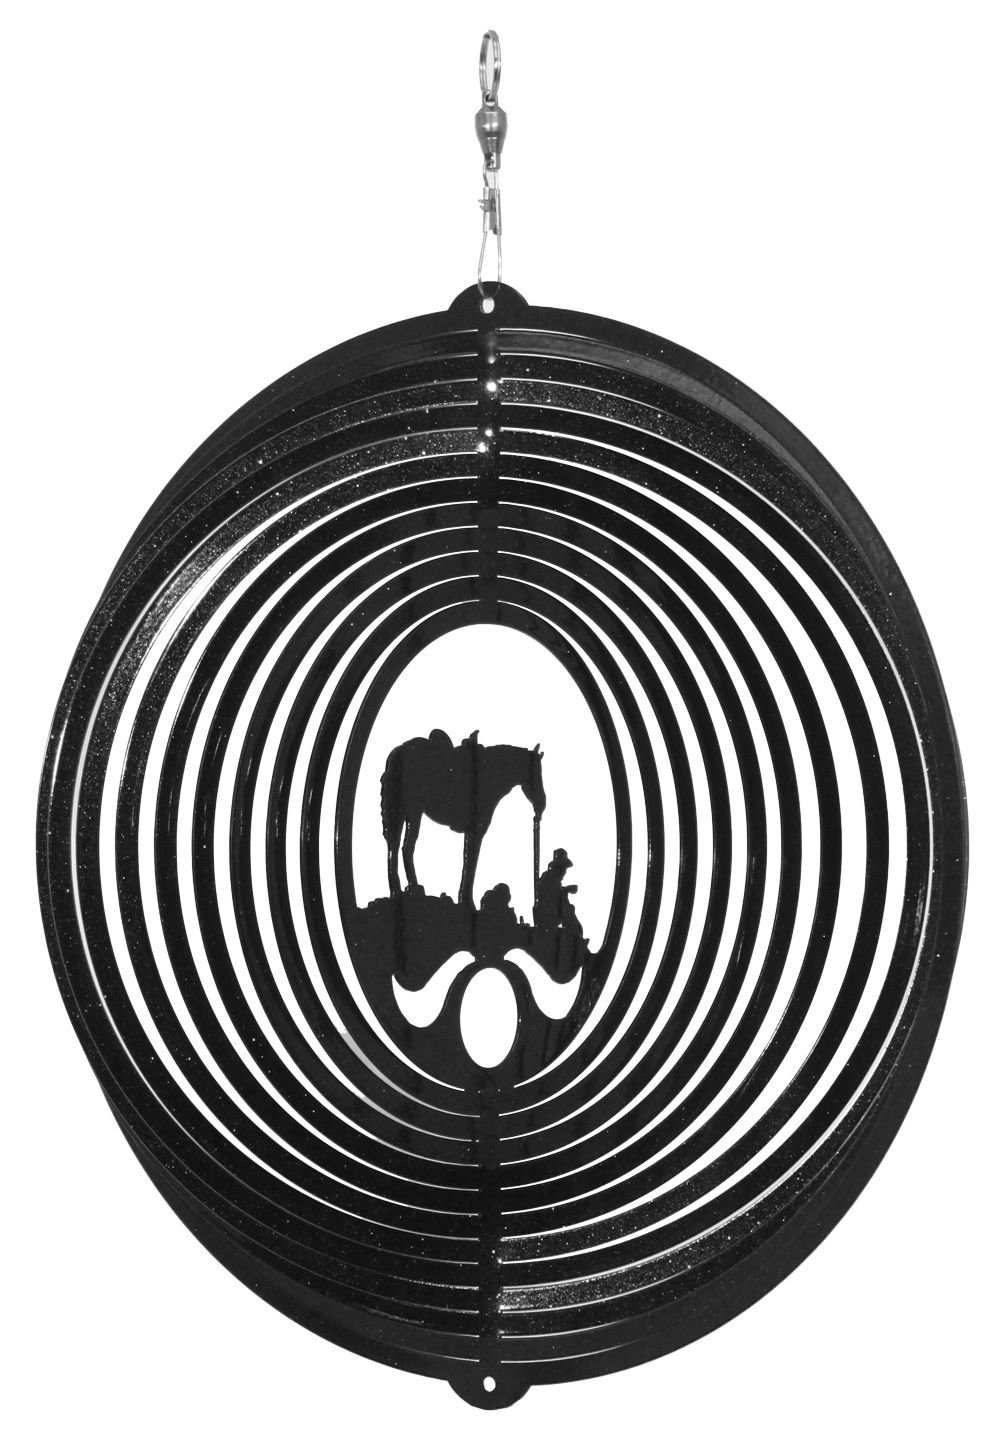 SWEN Products FLYING PIG CIRCLE Swirly Metal Wind Spinner